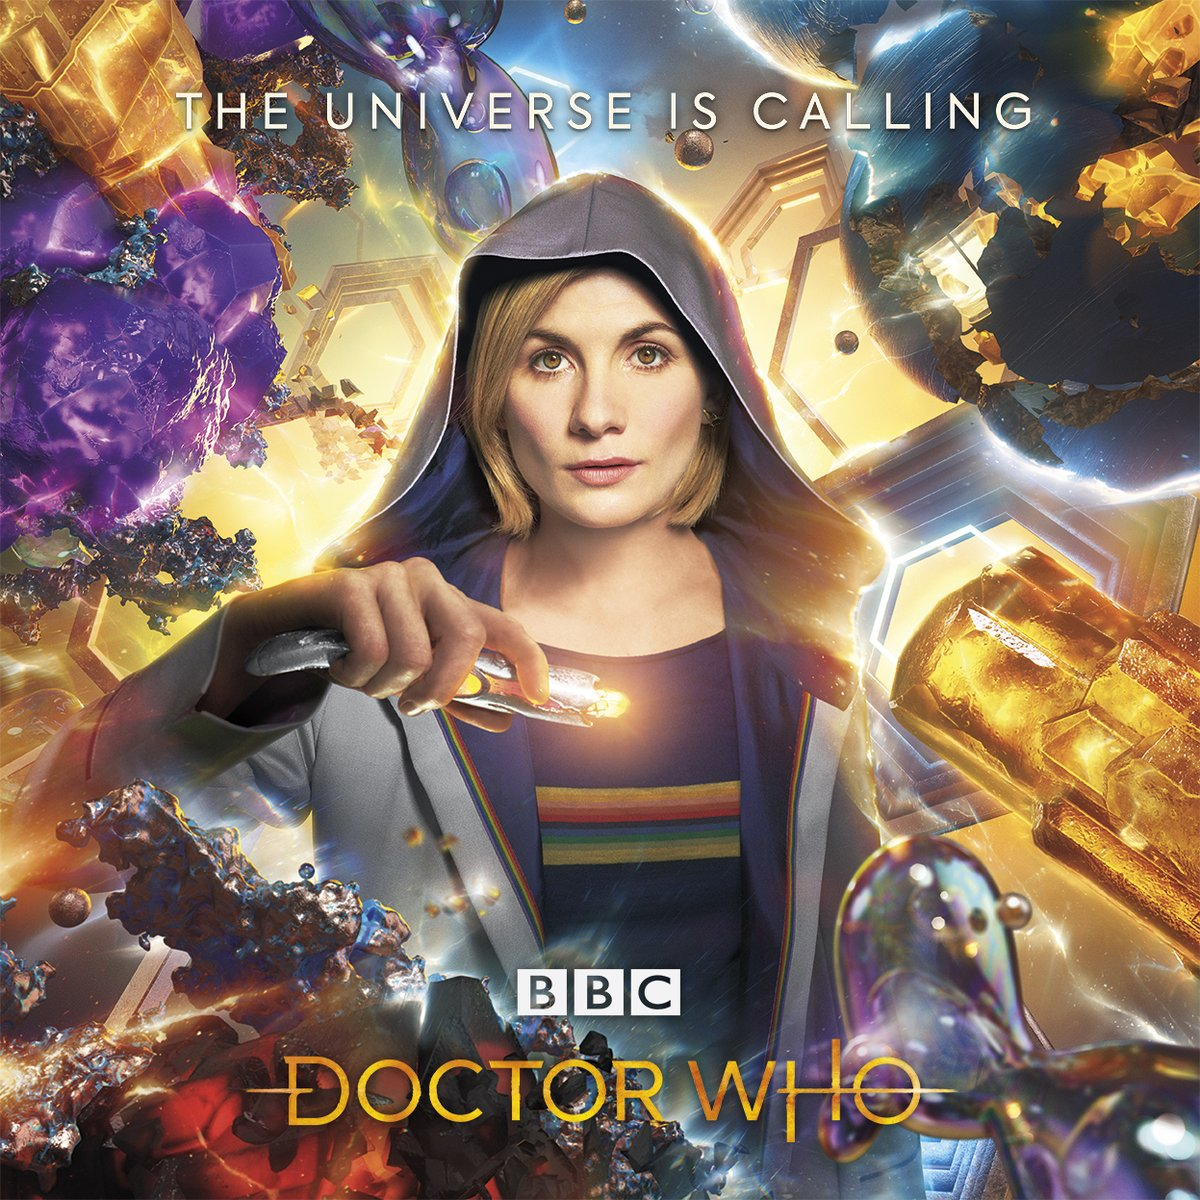 Doctor Who Season 11 Poster